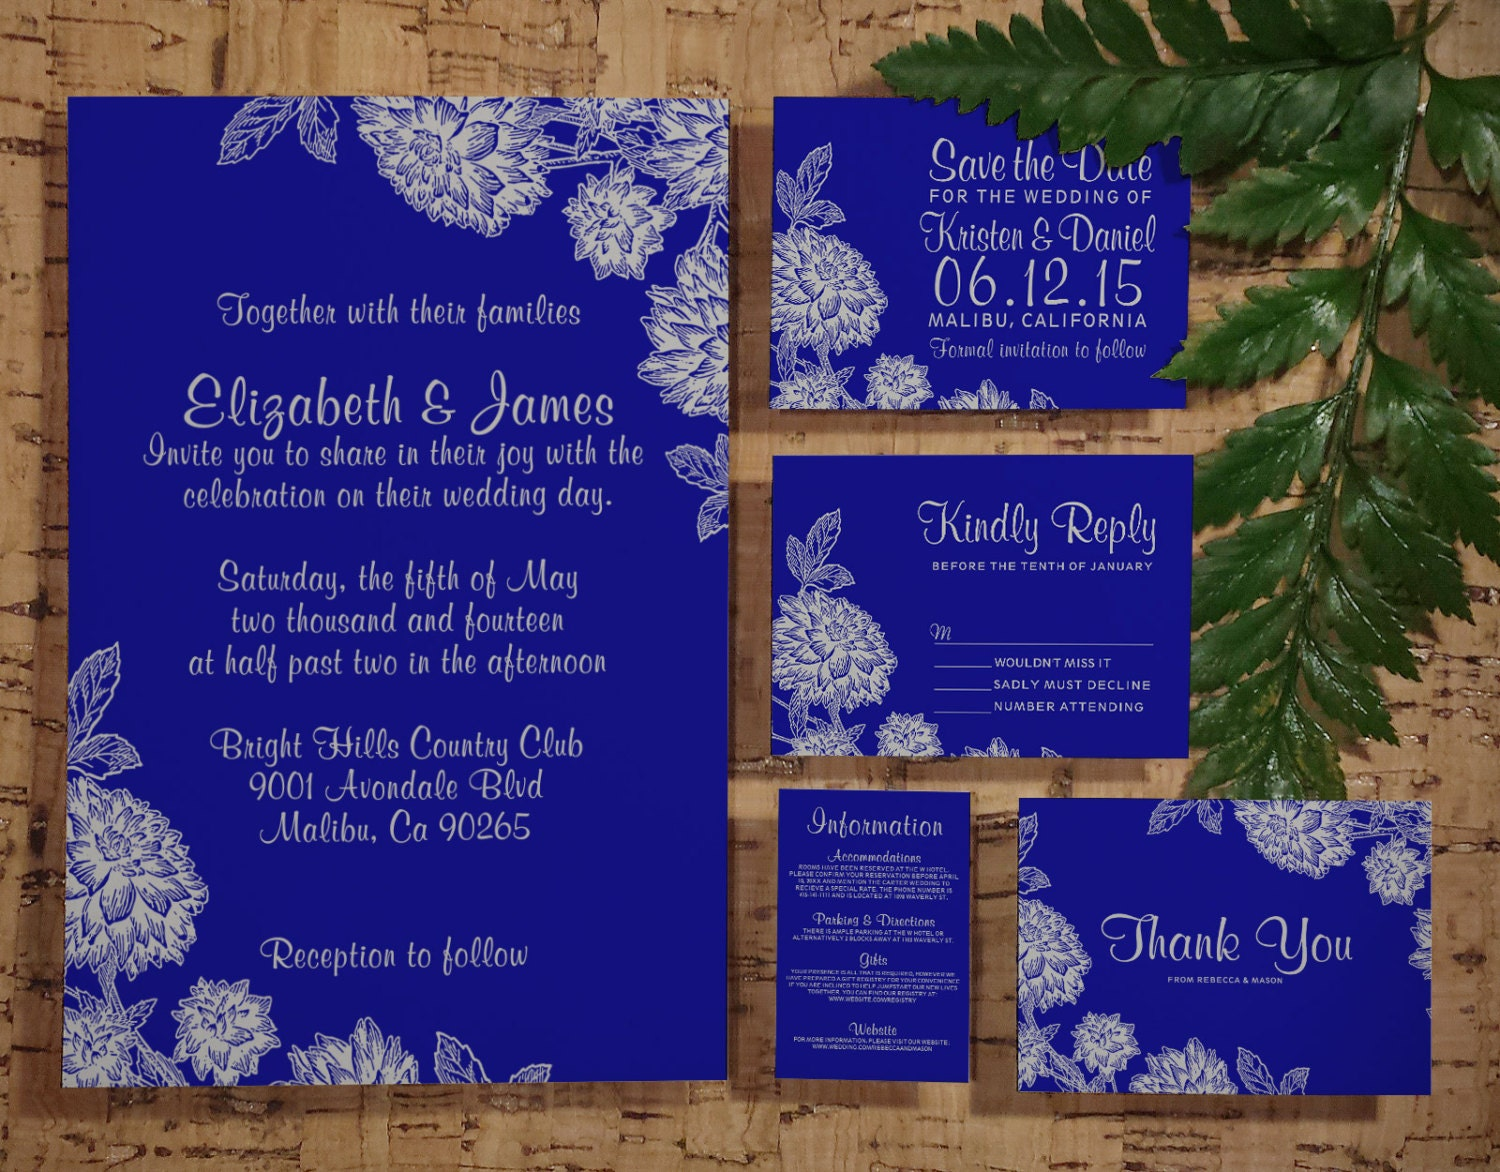 Royal Blue Wedding Invitation Cards: Elegant Royal Blue Wedding Invitation Set/Suite By